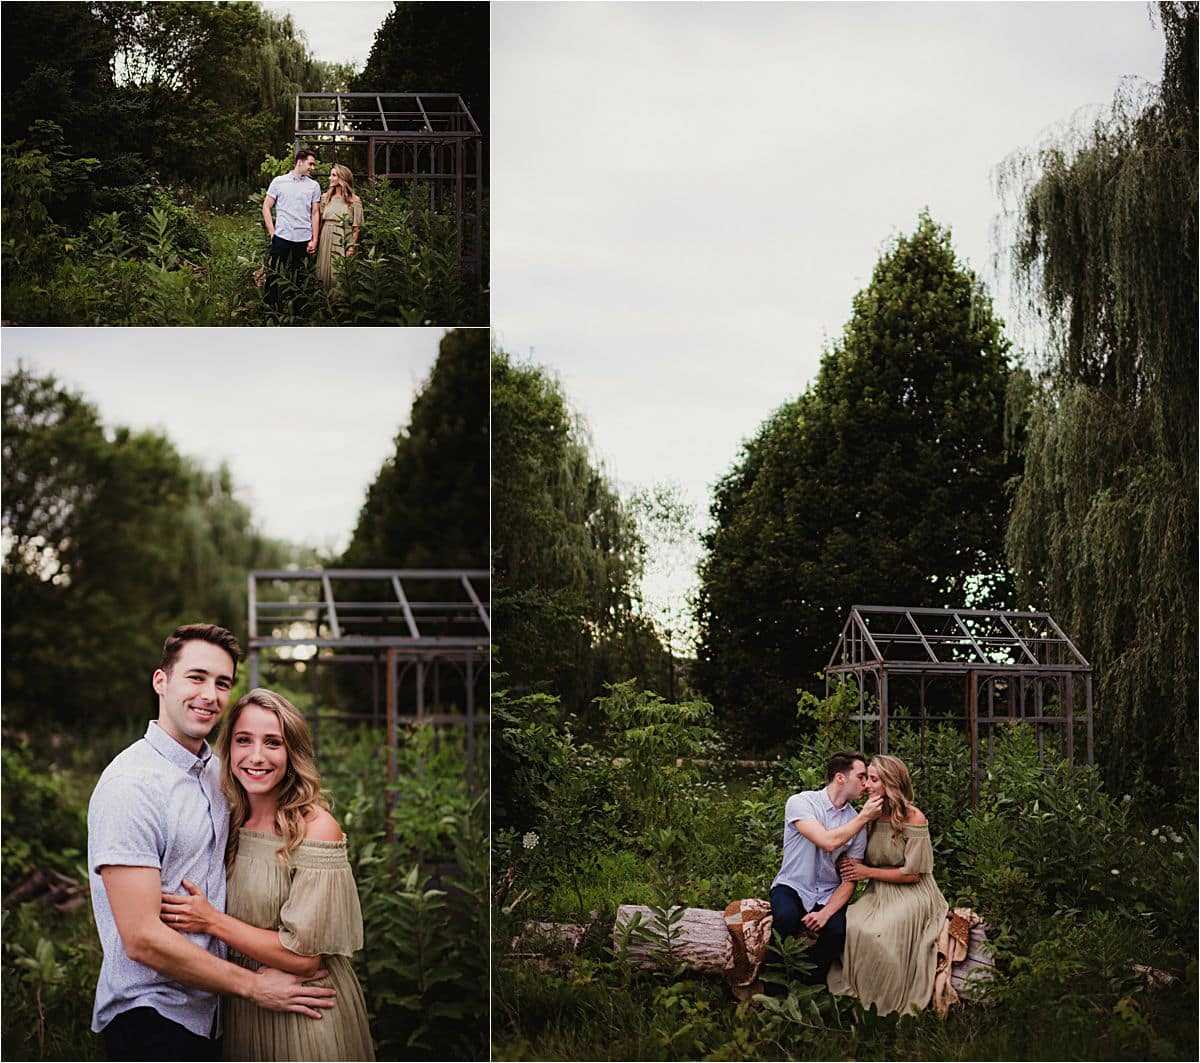 Outdoor Summer Engagement Session Couple Near Greenhouse